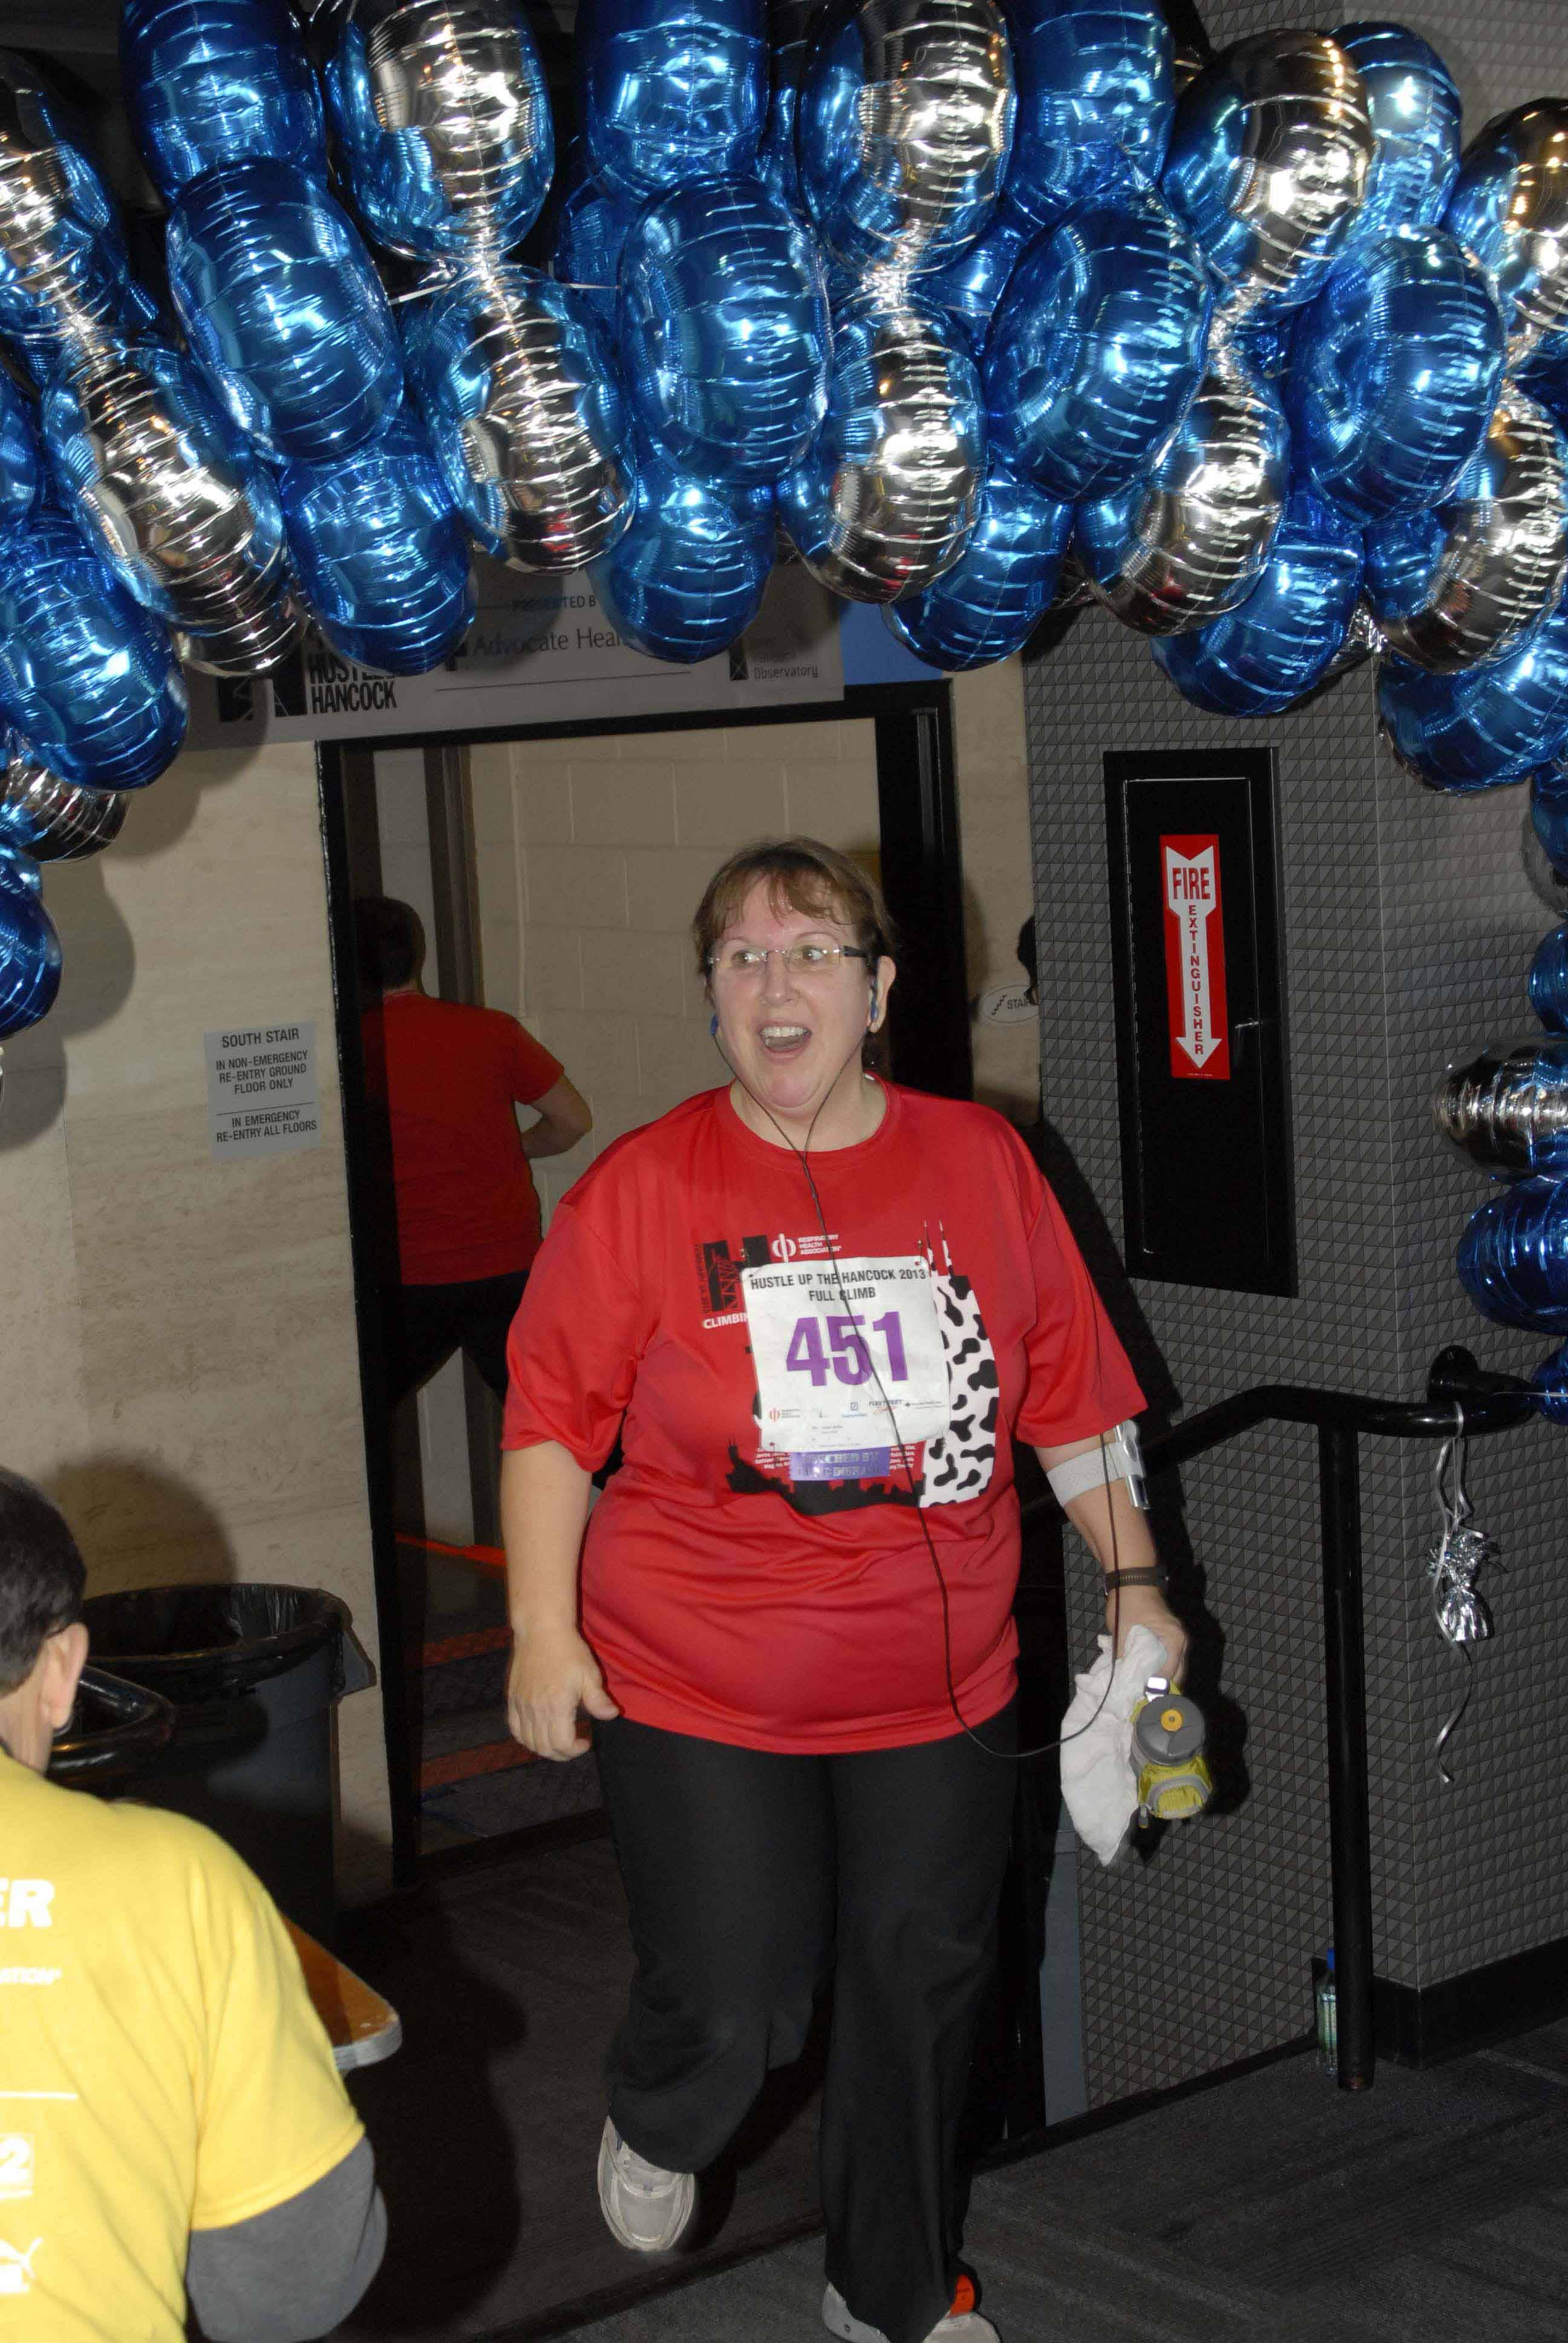 Cindy Kuffel crossing under the finish line on the 94th floor of the Hancock. Beating her time of last year by 15 minutes